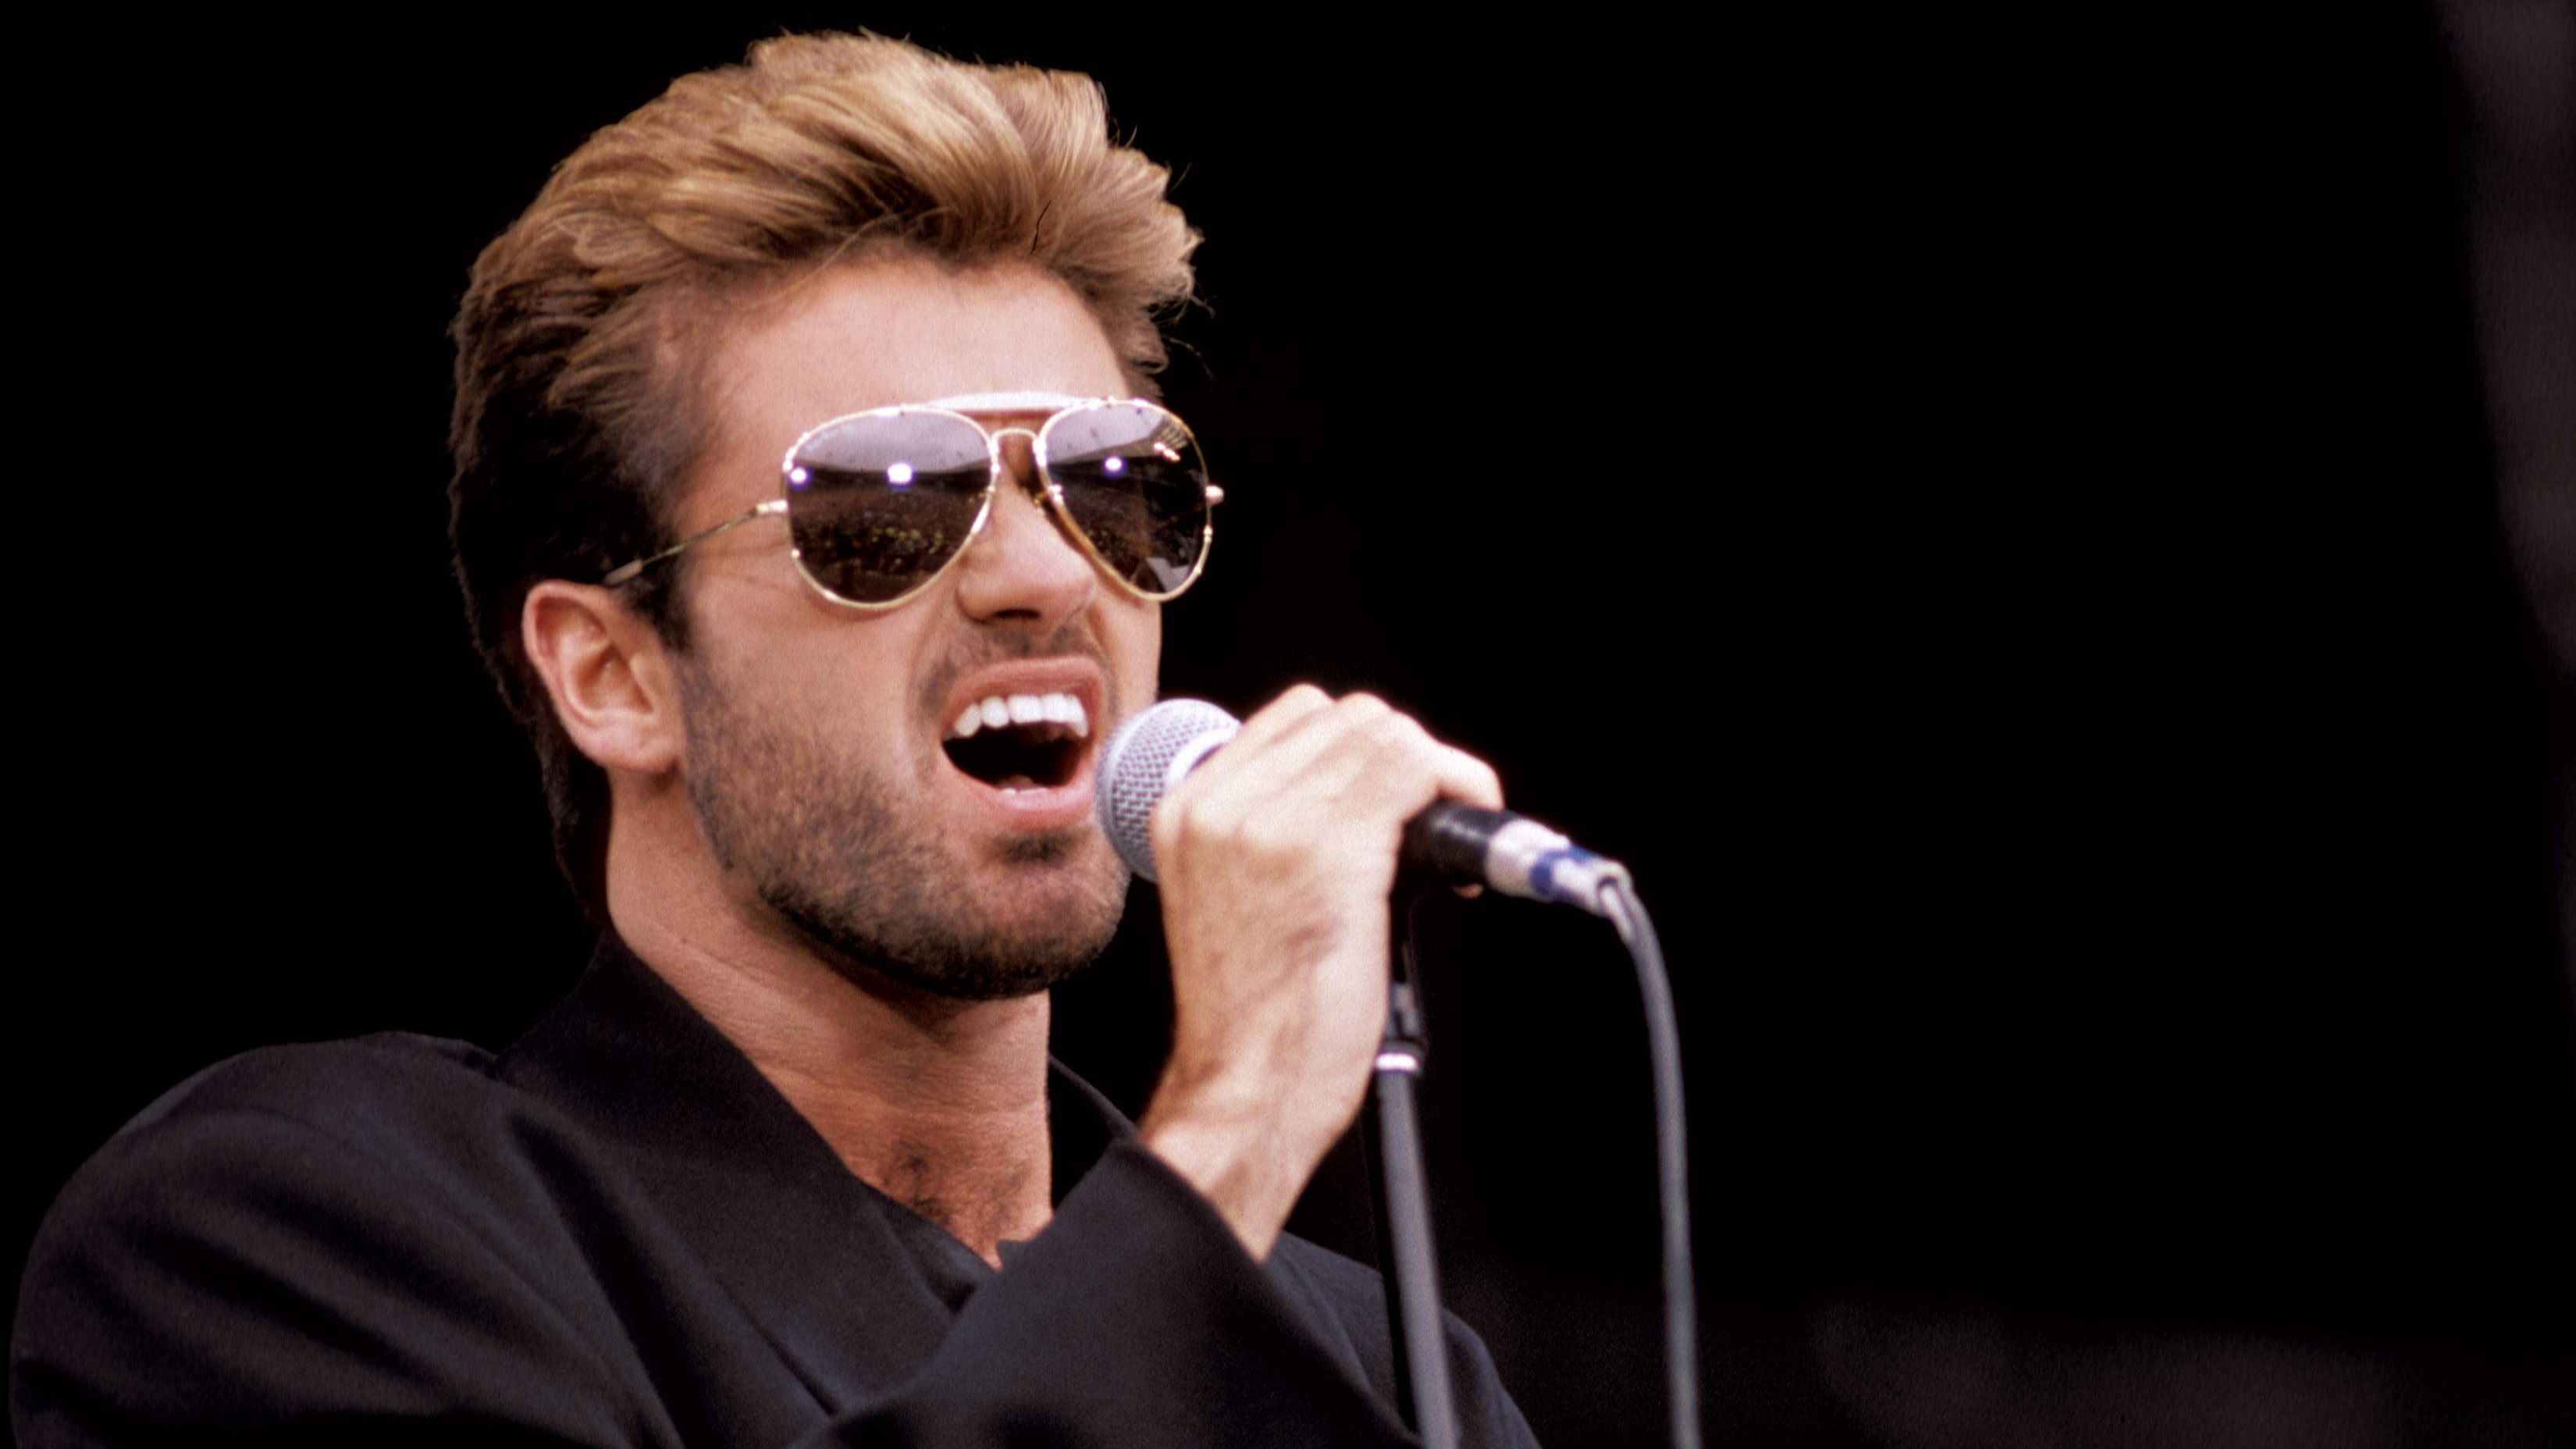 Fashion mourns George Michael